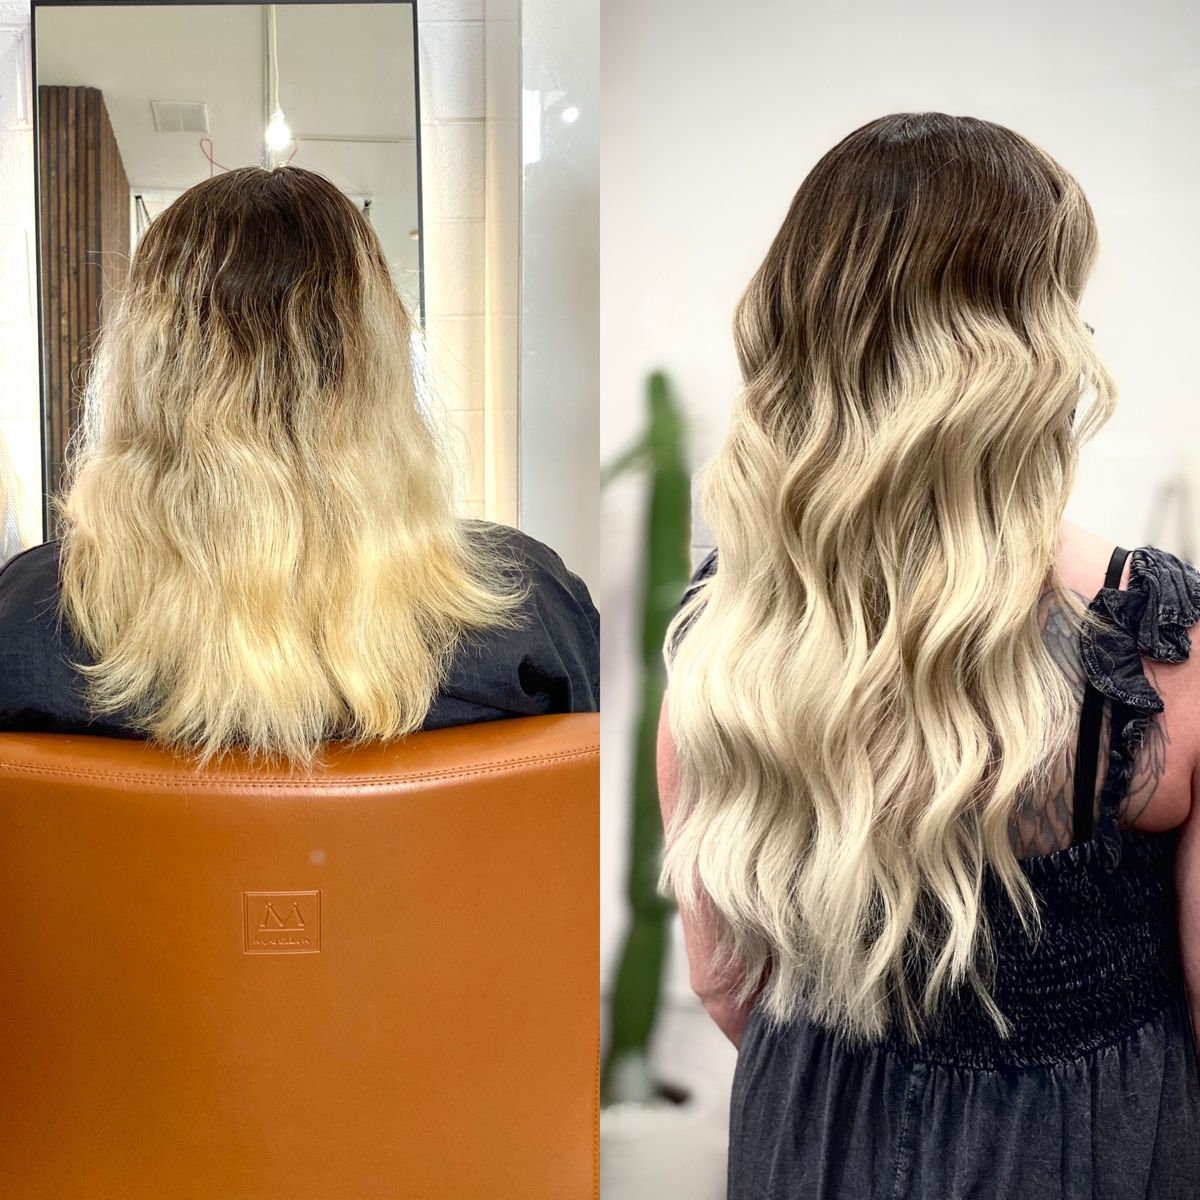 Pin By Running With Scissors Hair Stu On Hair By Running With Scissors Hair Studio In 2020 Long Hair Styles Hair Studio Hair Styles